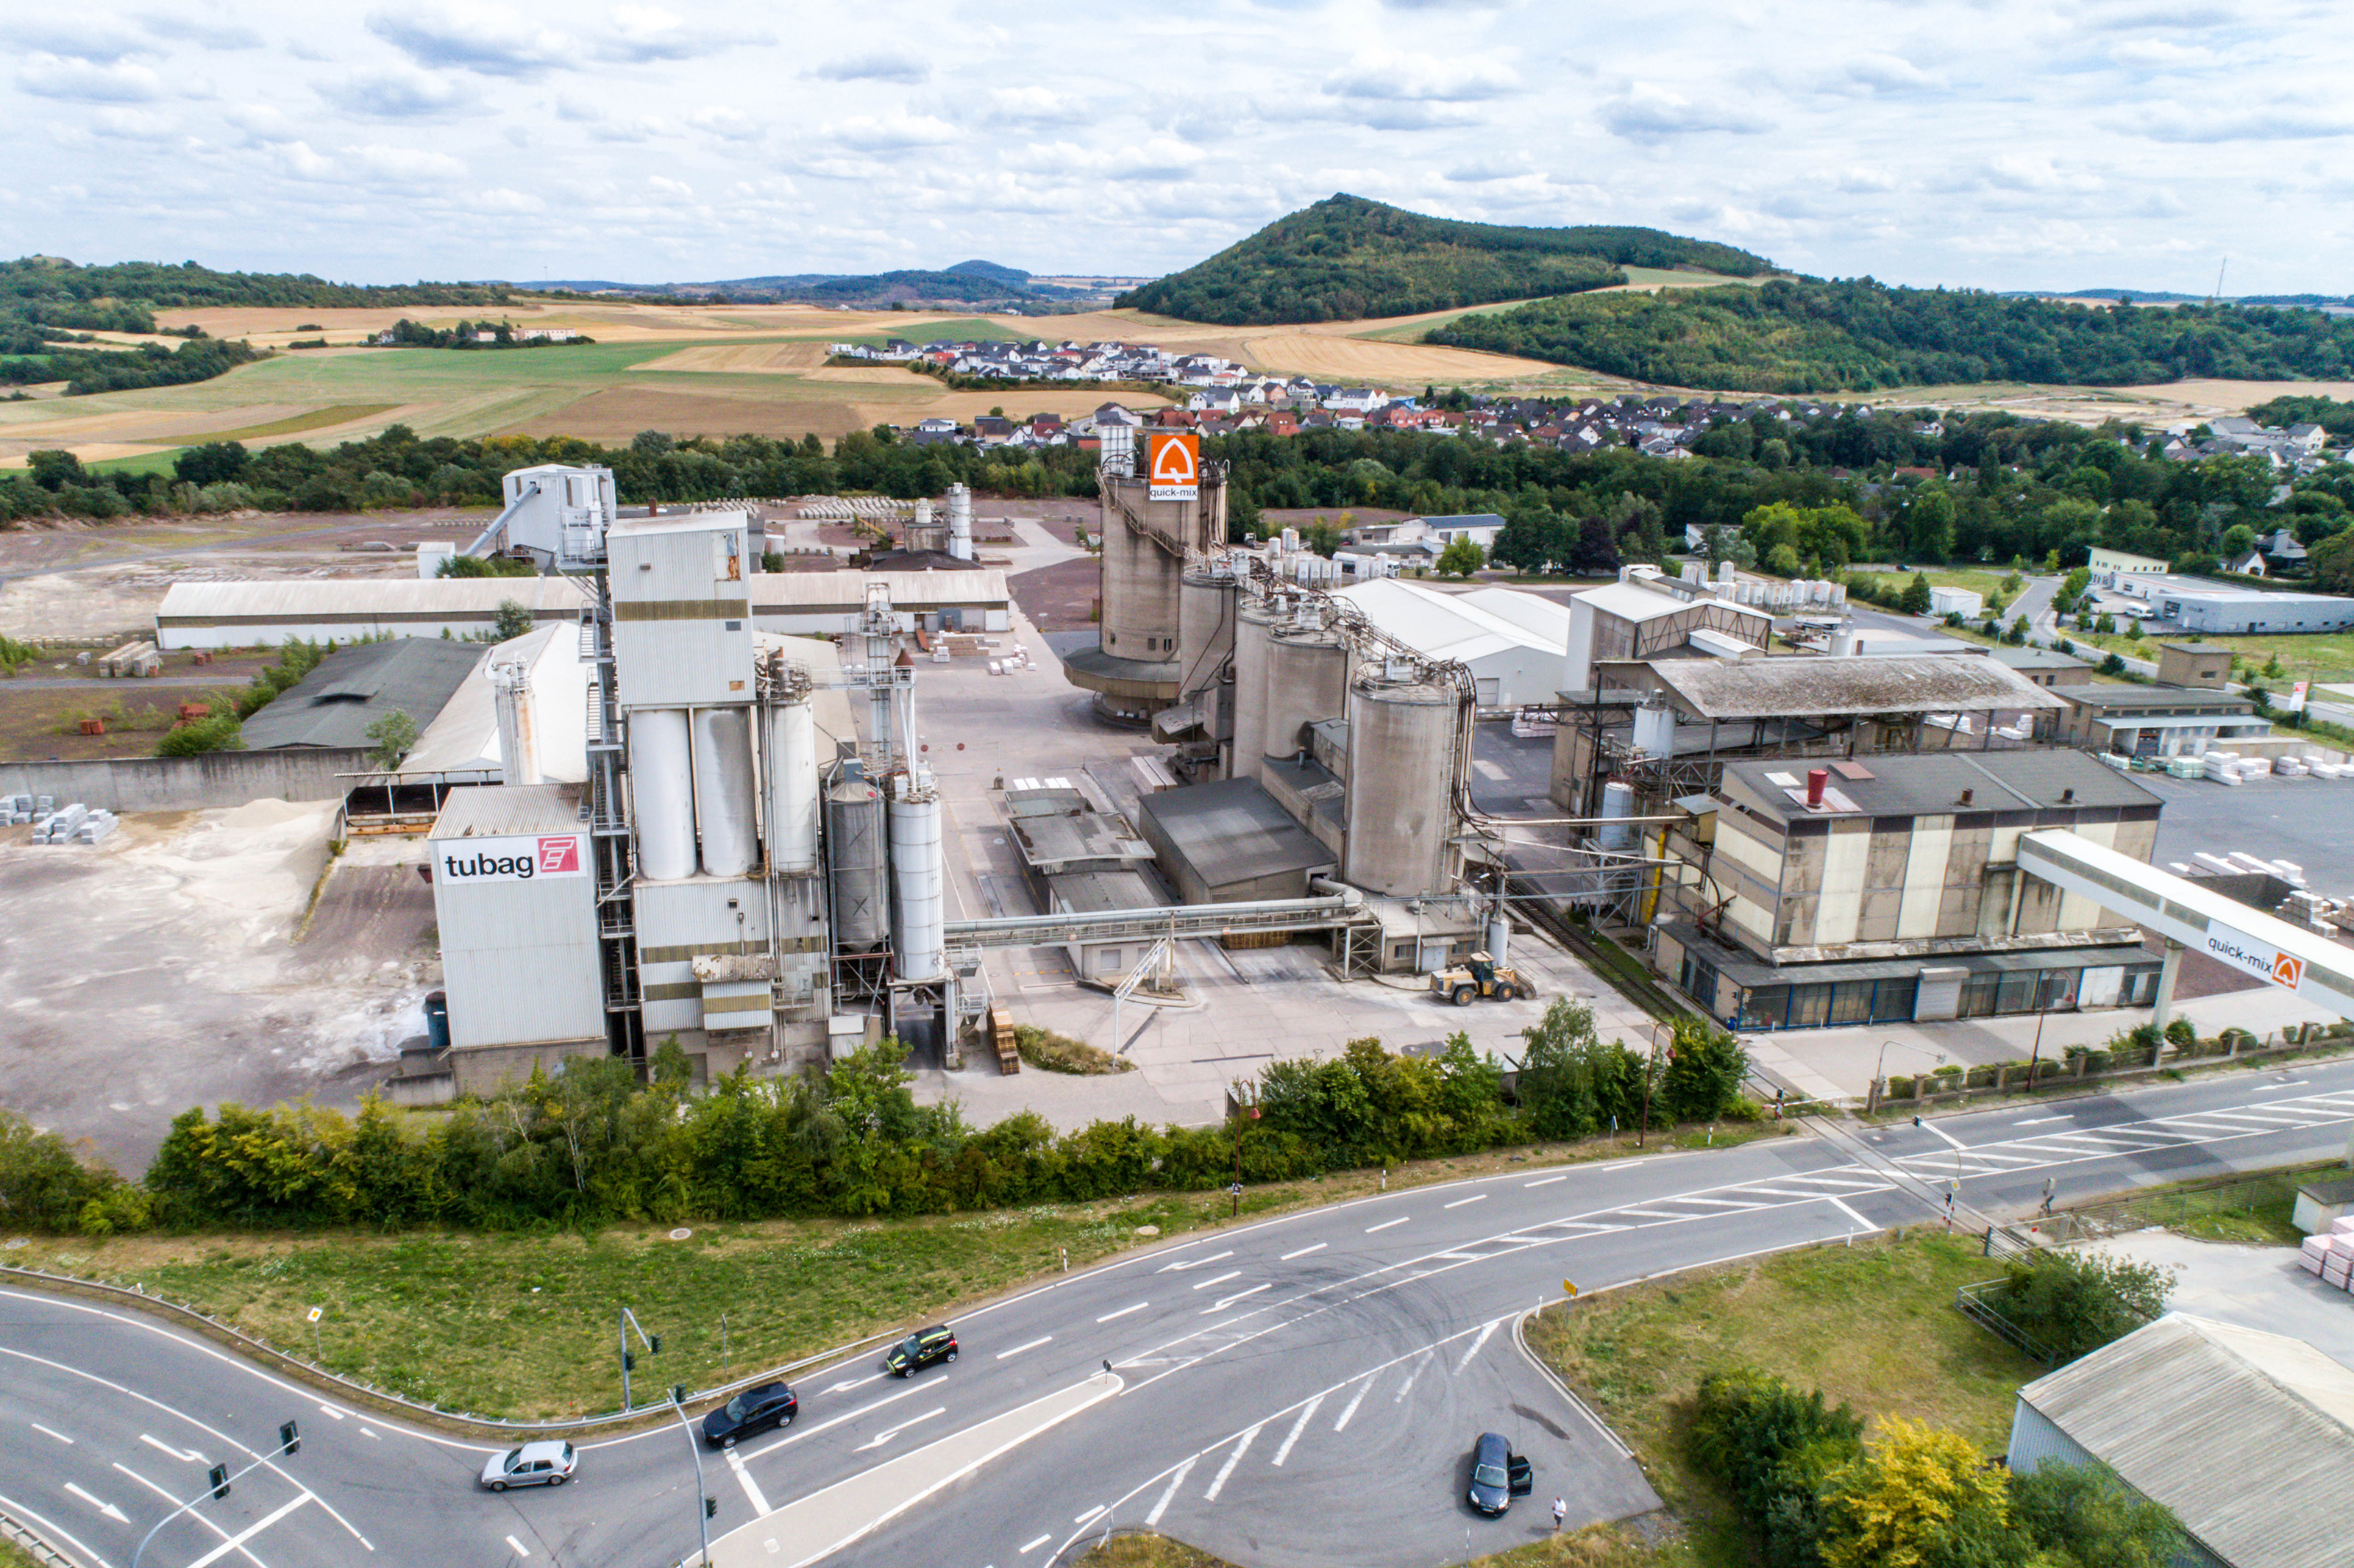 Koblenz GERMANY 21.07.2018 - Quickmix Concrete Batching Plant and construction material factory aerial view.